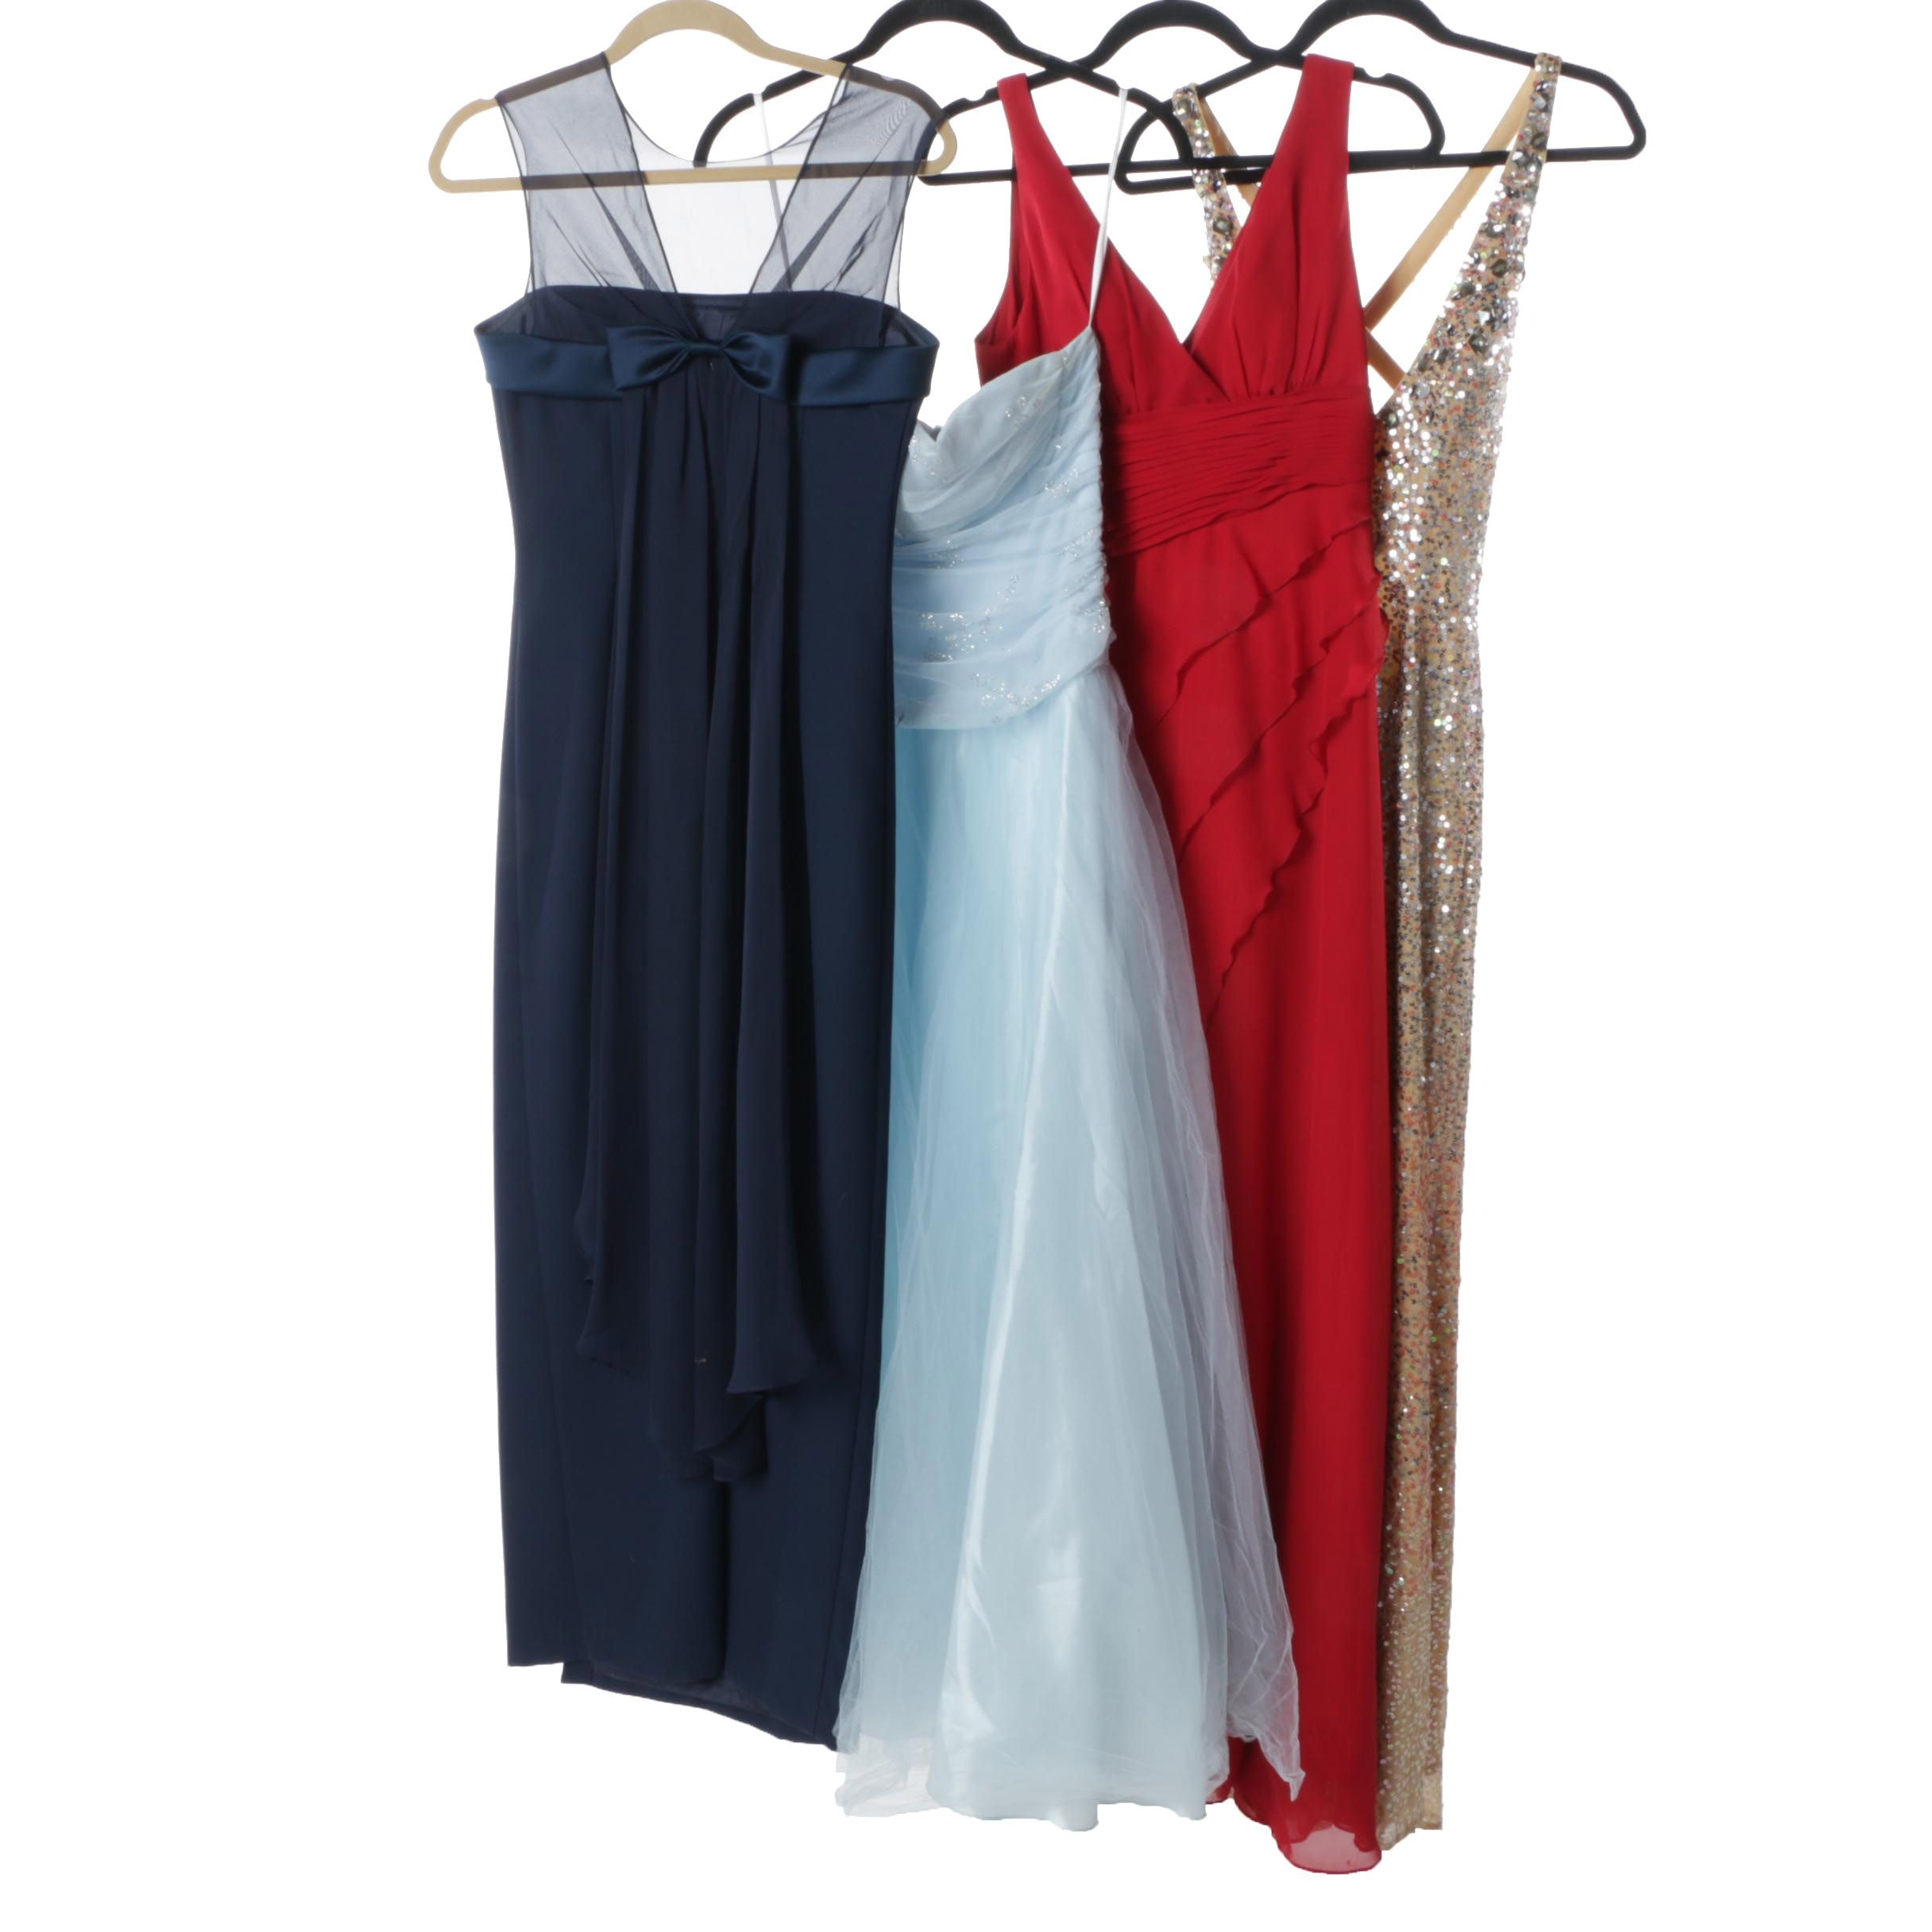 Women's Formal Gowns Including Ever Beauty and Blondie Nites